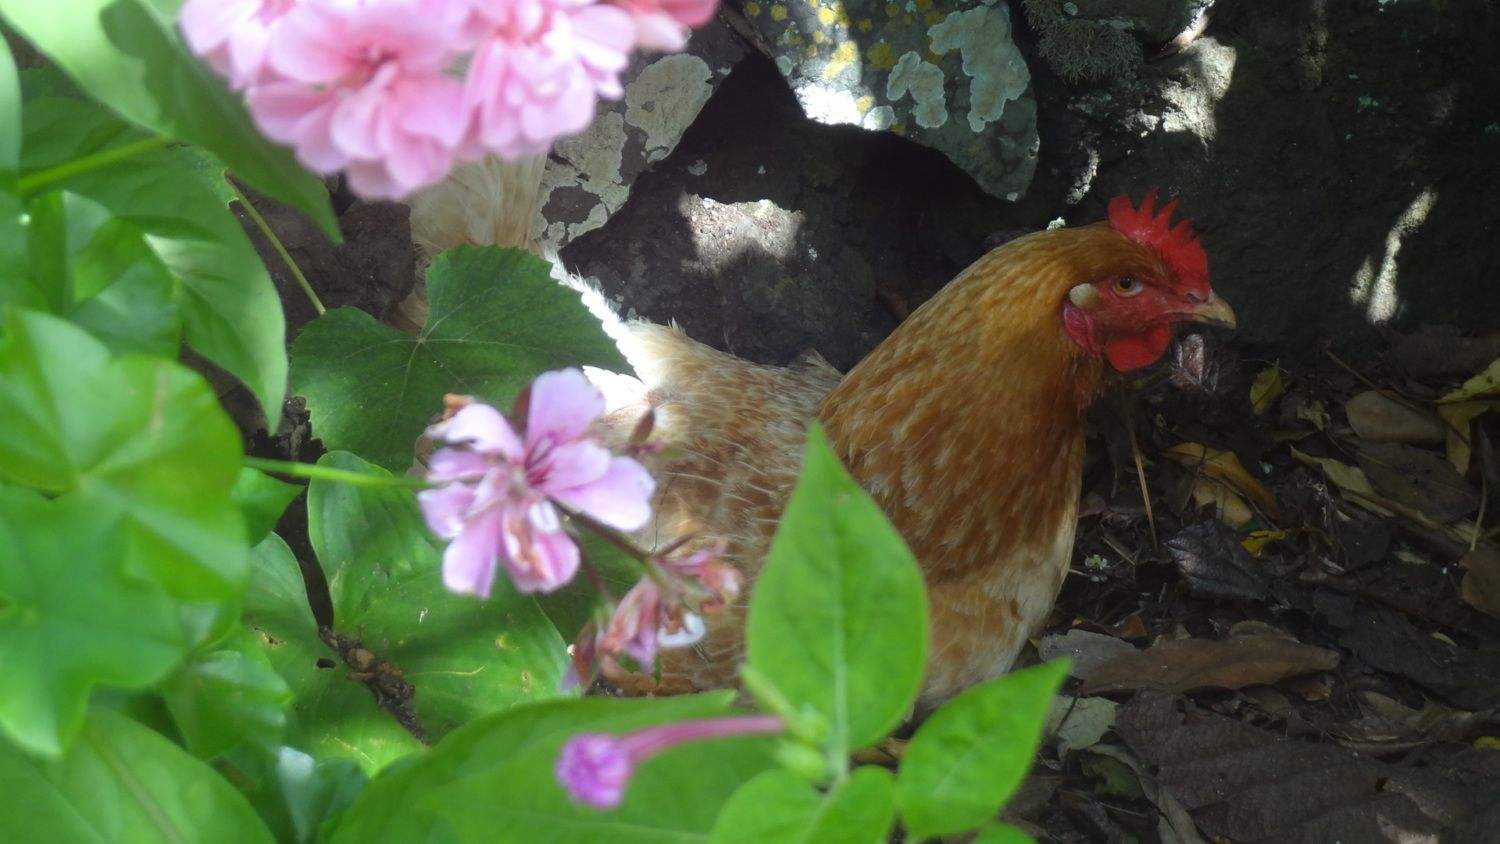 portuguese yellow or buff orpington backyard chickens